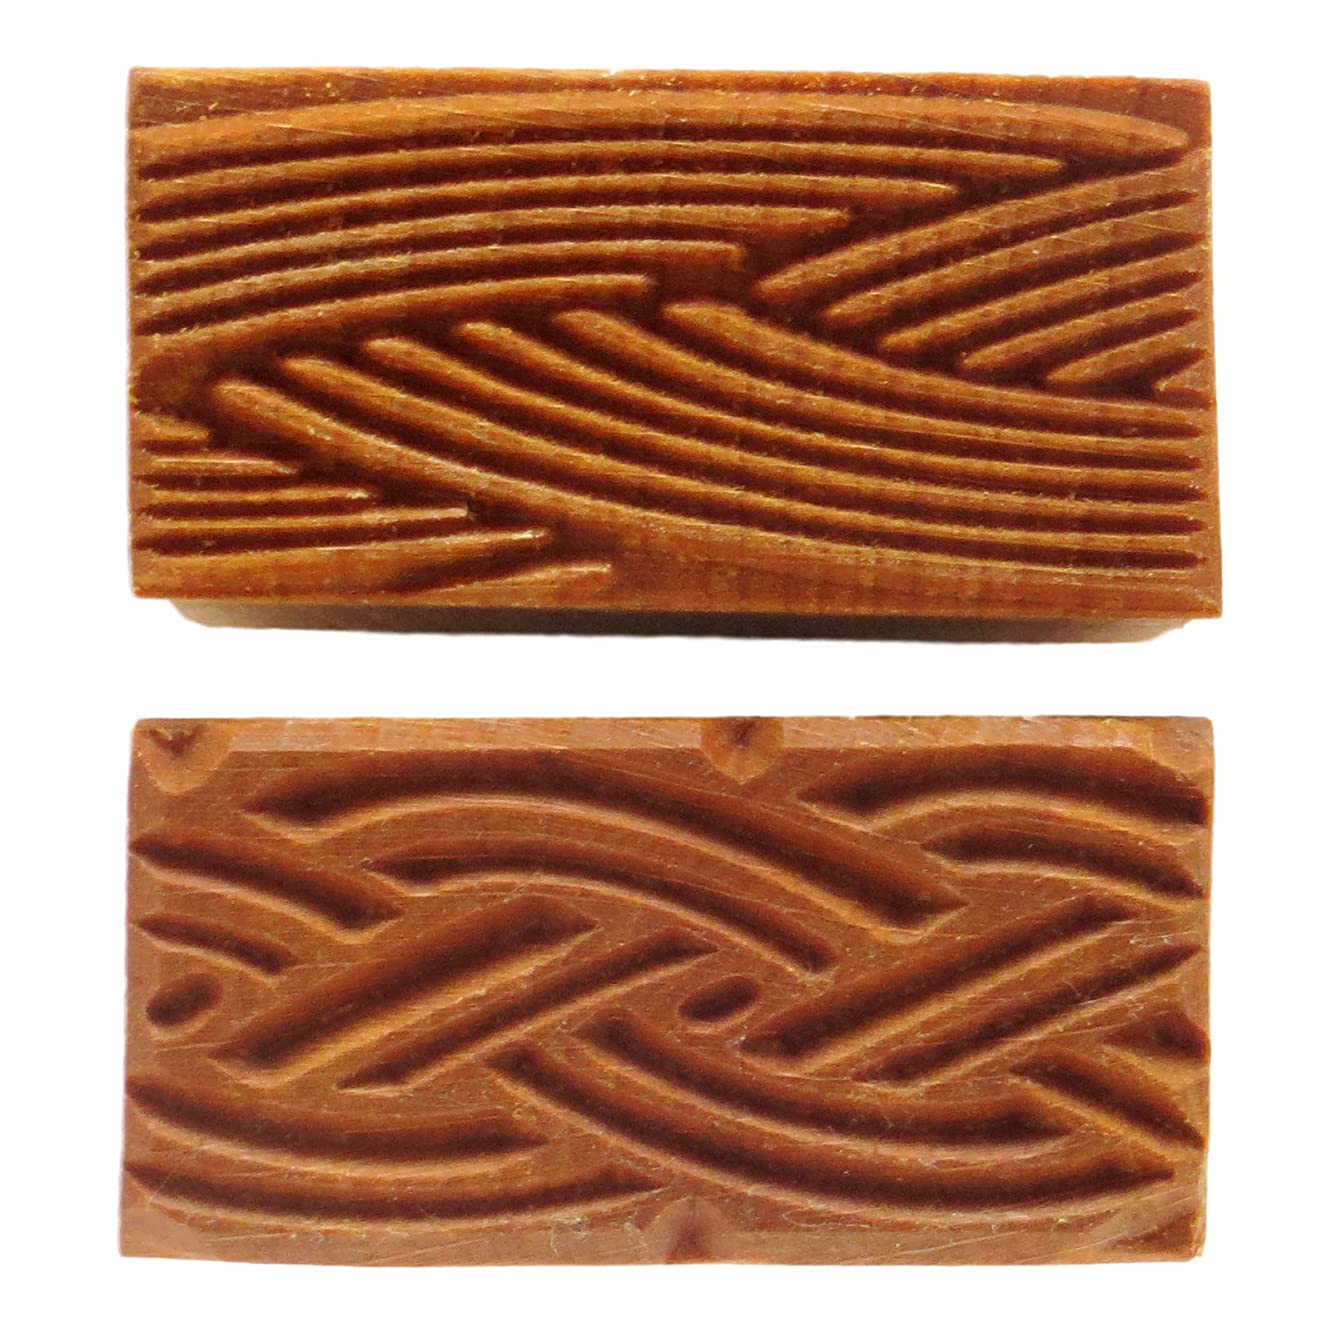 MKM Pottery Tools Stamps 4 Clay Medium Rectangle Decorative Stamp for Clay (Srm-12 Braids)